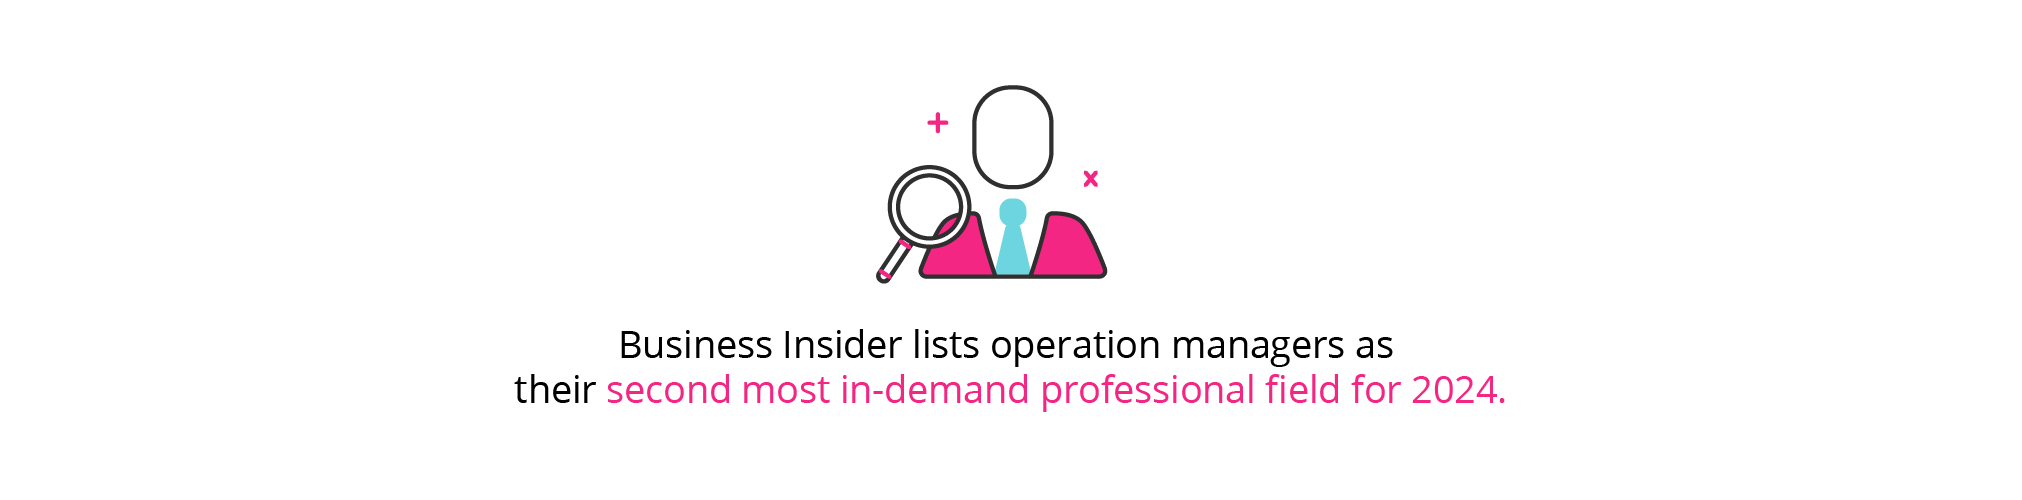 How To Become An Operations Manager Career Advice